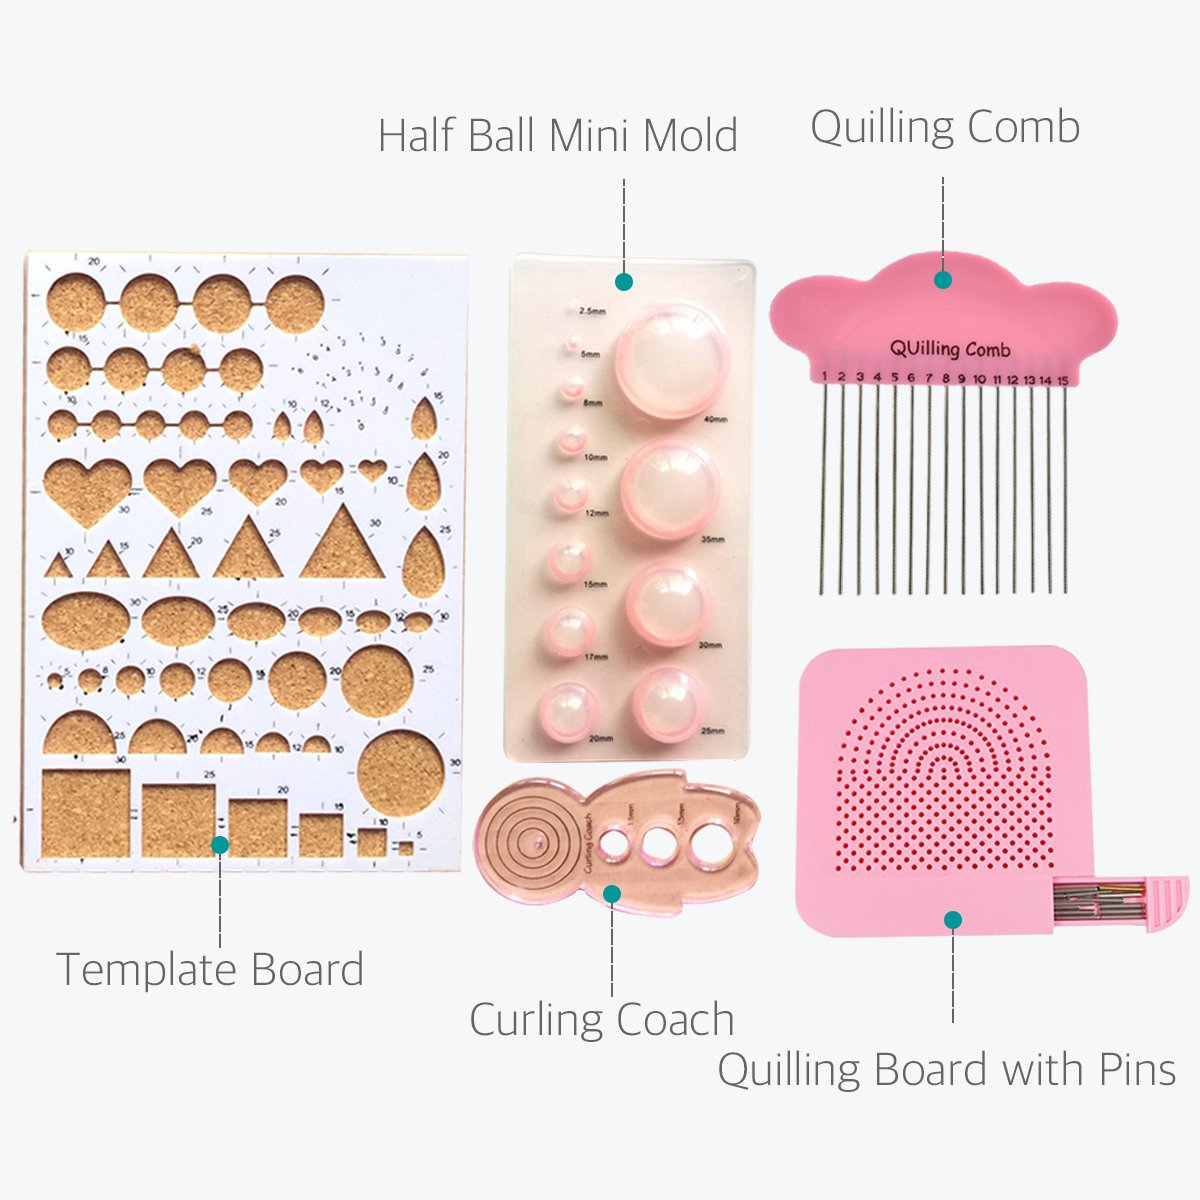 Lantee Quilling Supplies - 20 Sets of Quilling Paper Kits Include 8 Pack of 3mm 960 Quilling Paper Strips and 12 Quilling Tools by Lantee (Image #5)